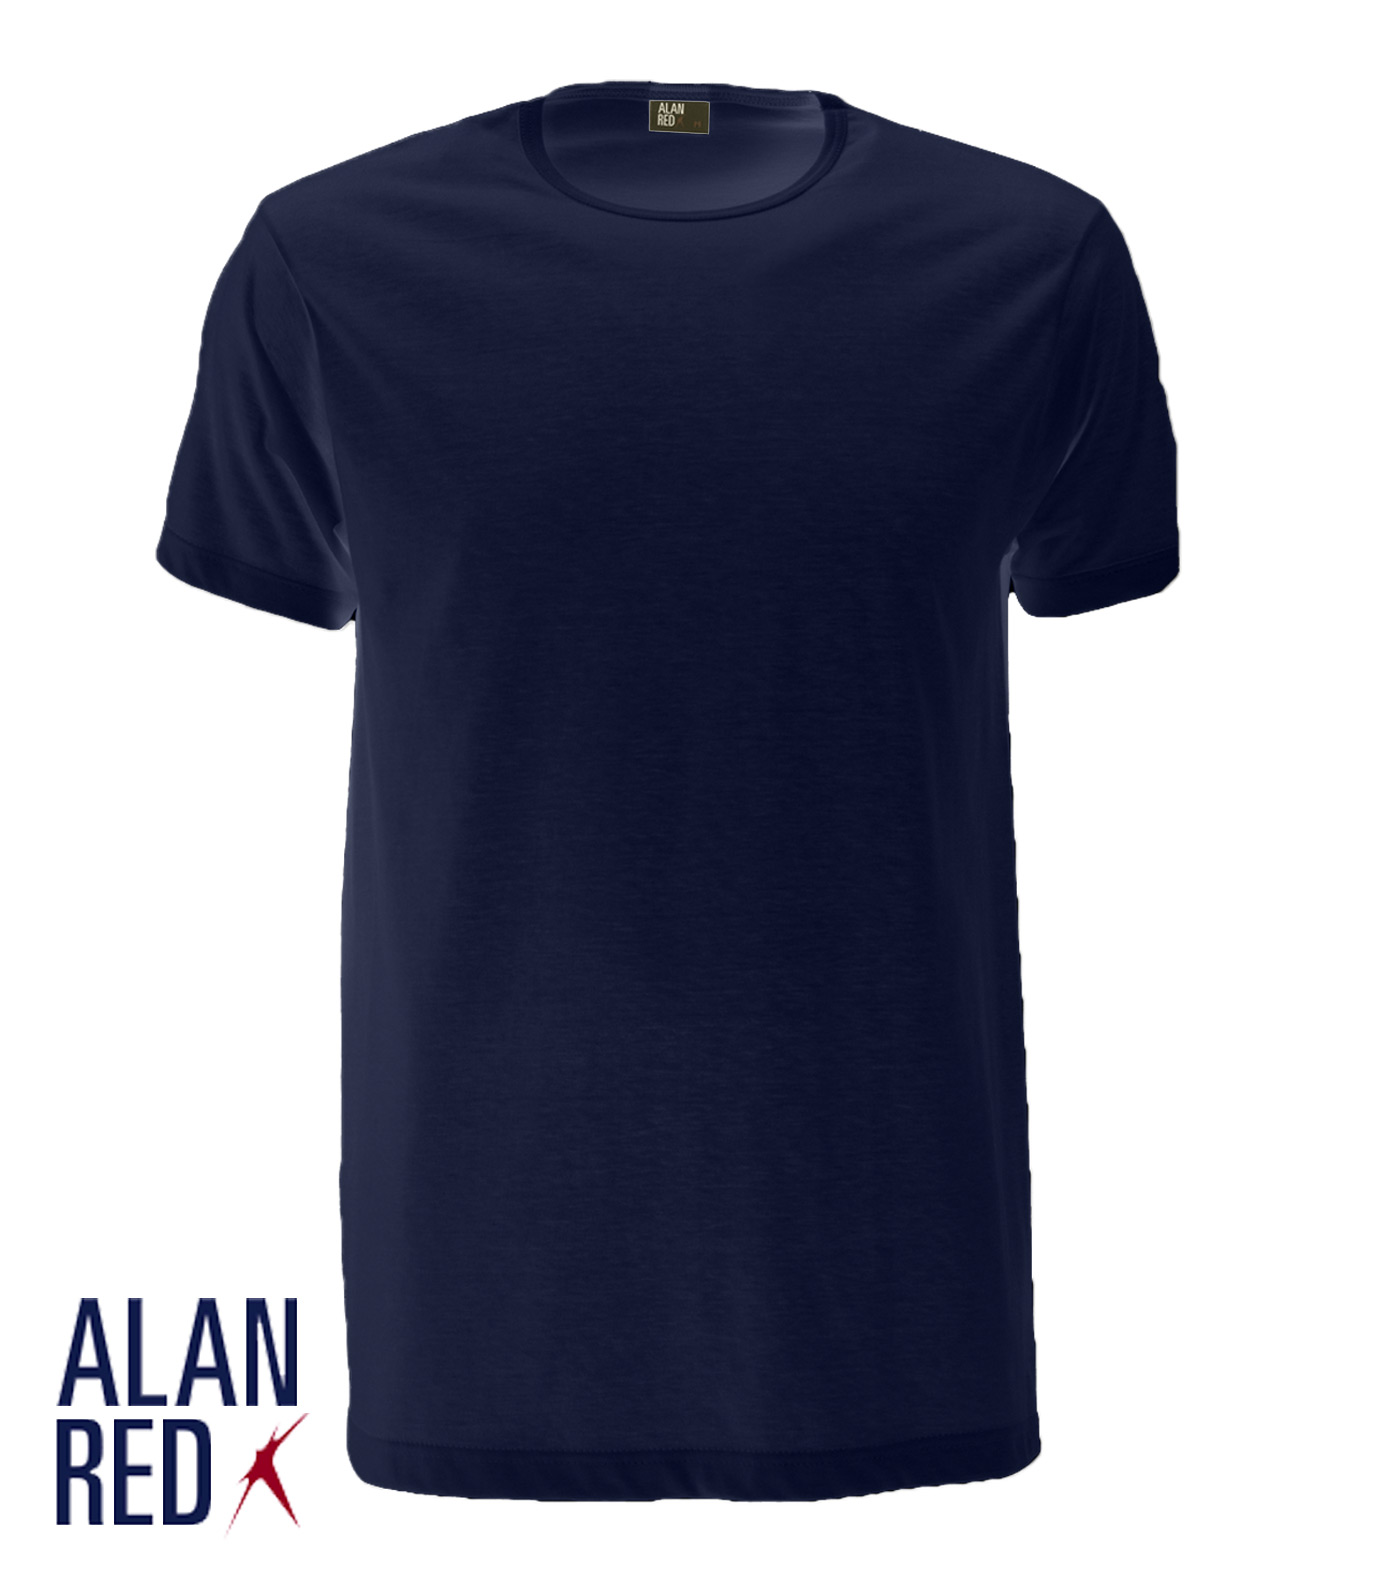 Alan Red Derby - navy 1-pack